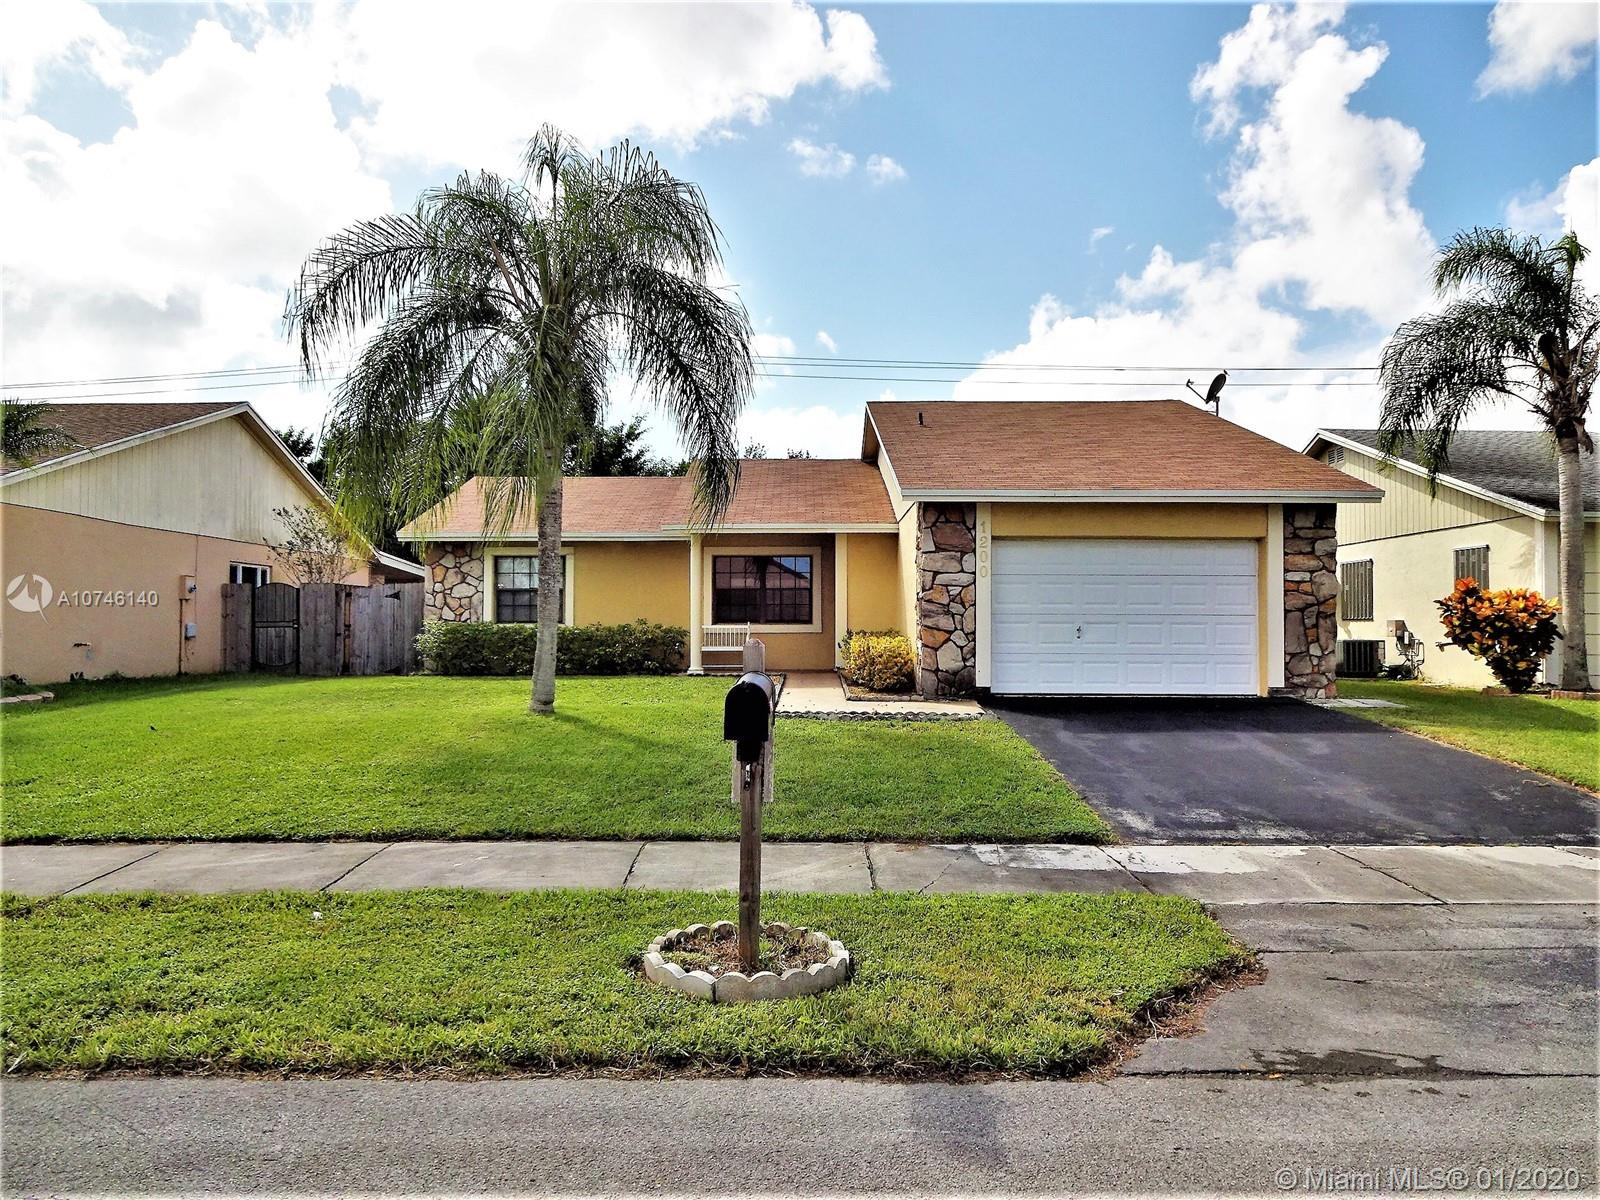 1200 S Fieldlark Ln, Homestead, FL 33035 - Homestead, FL real estate listing